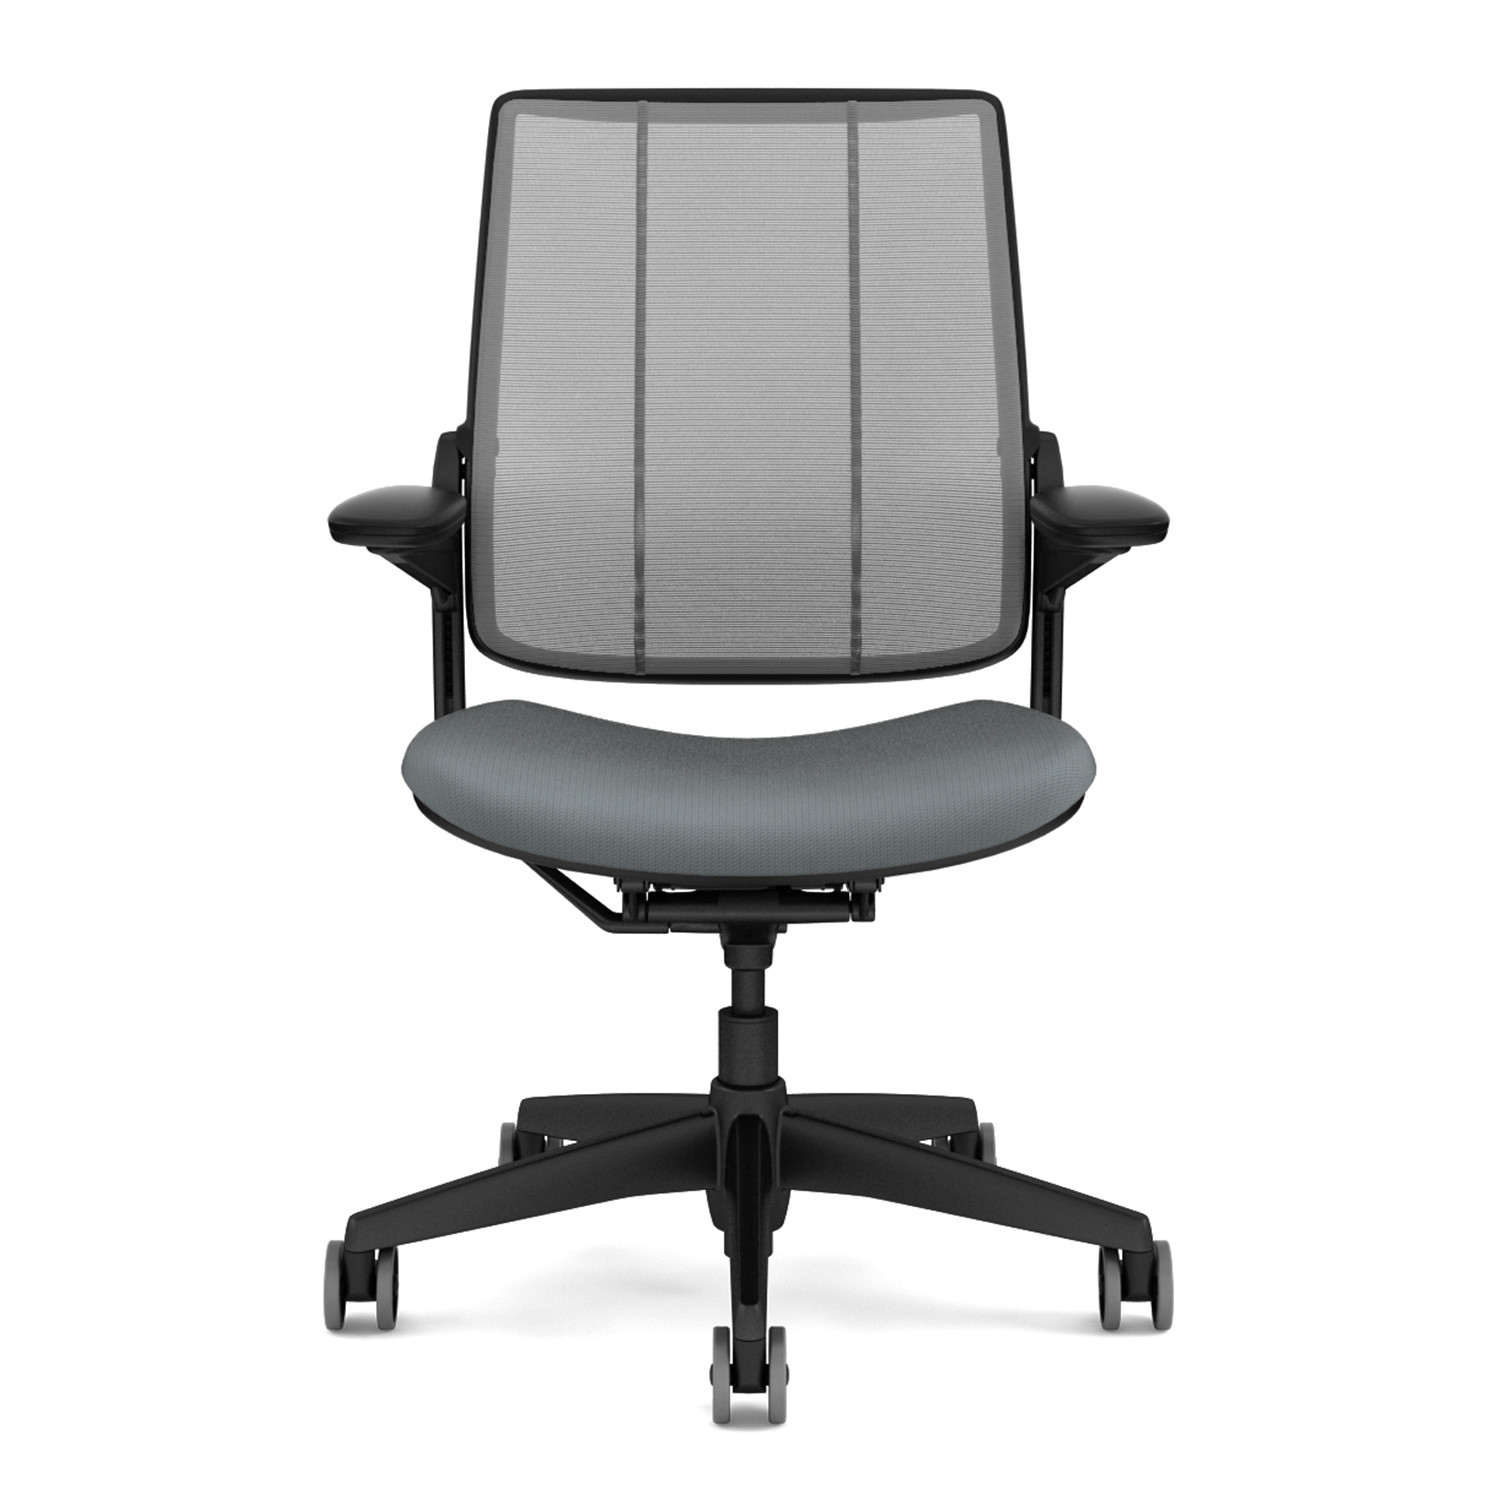 diffrient smart chair folding for camping task black 43 humanscale